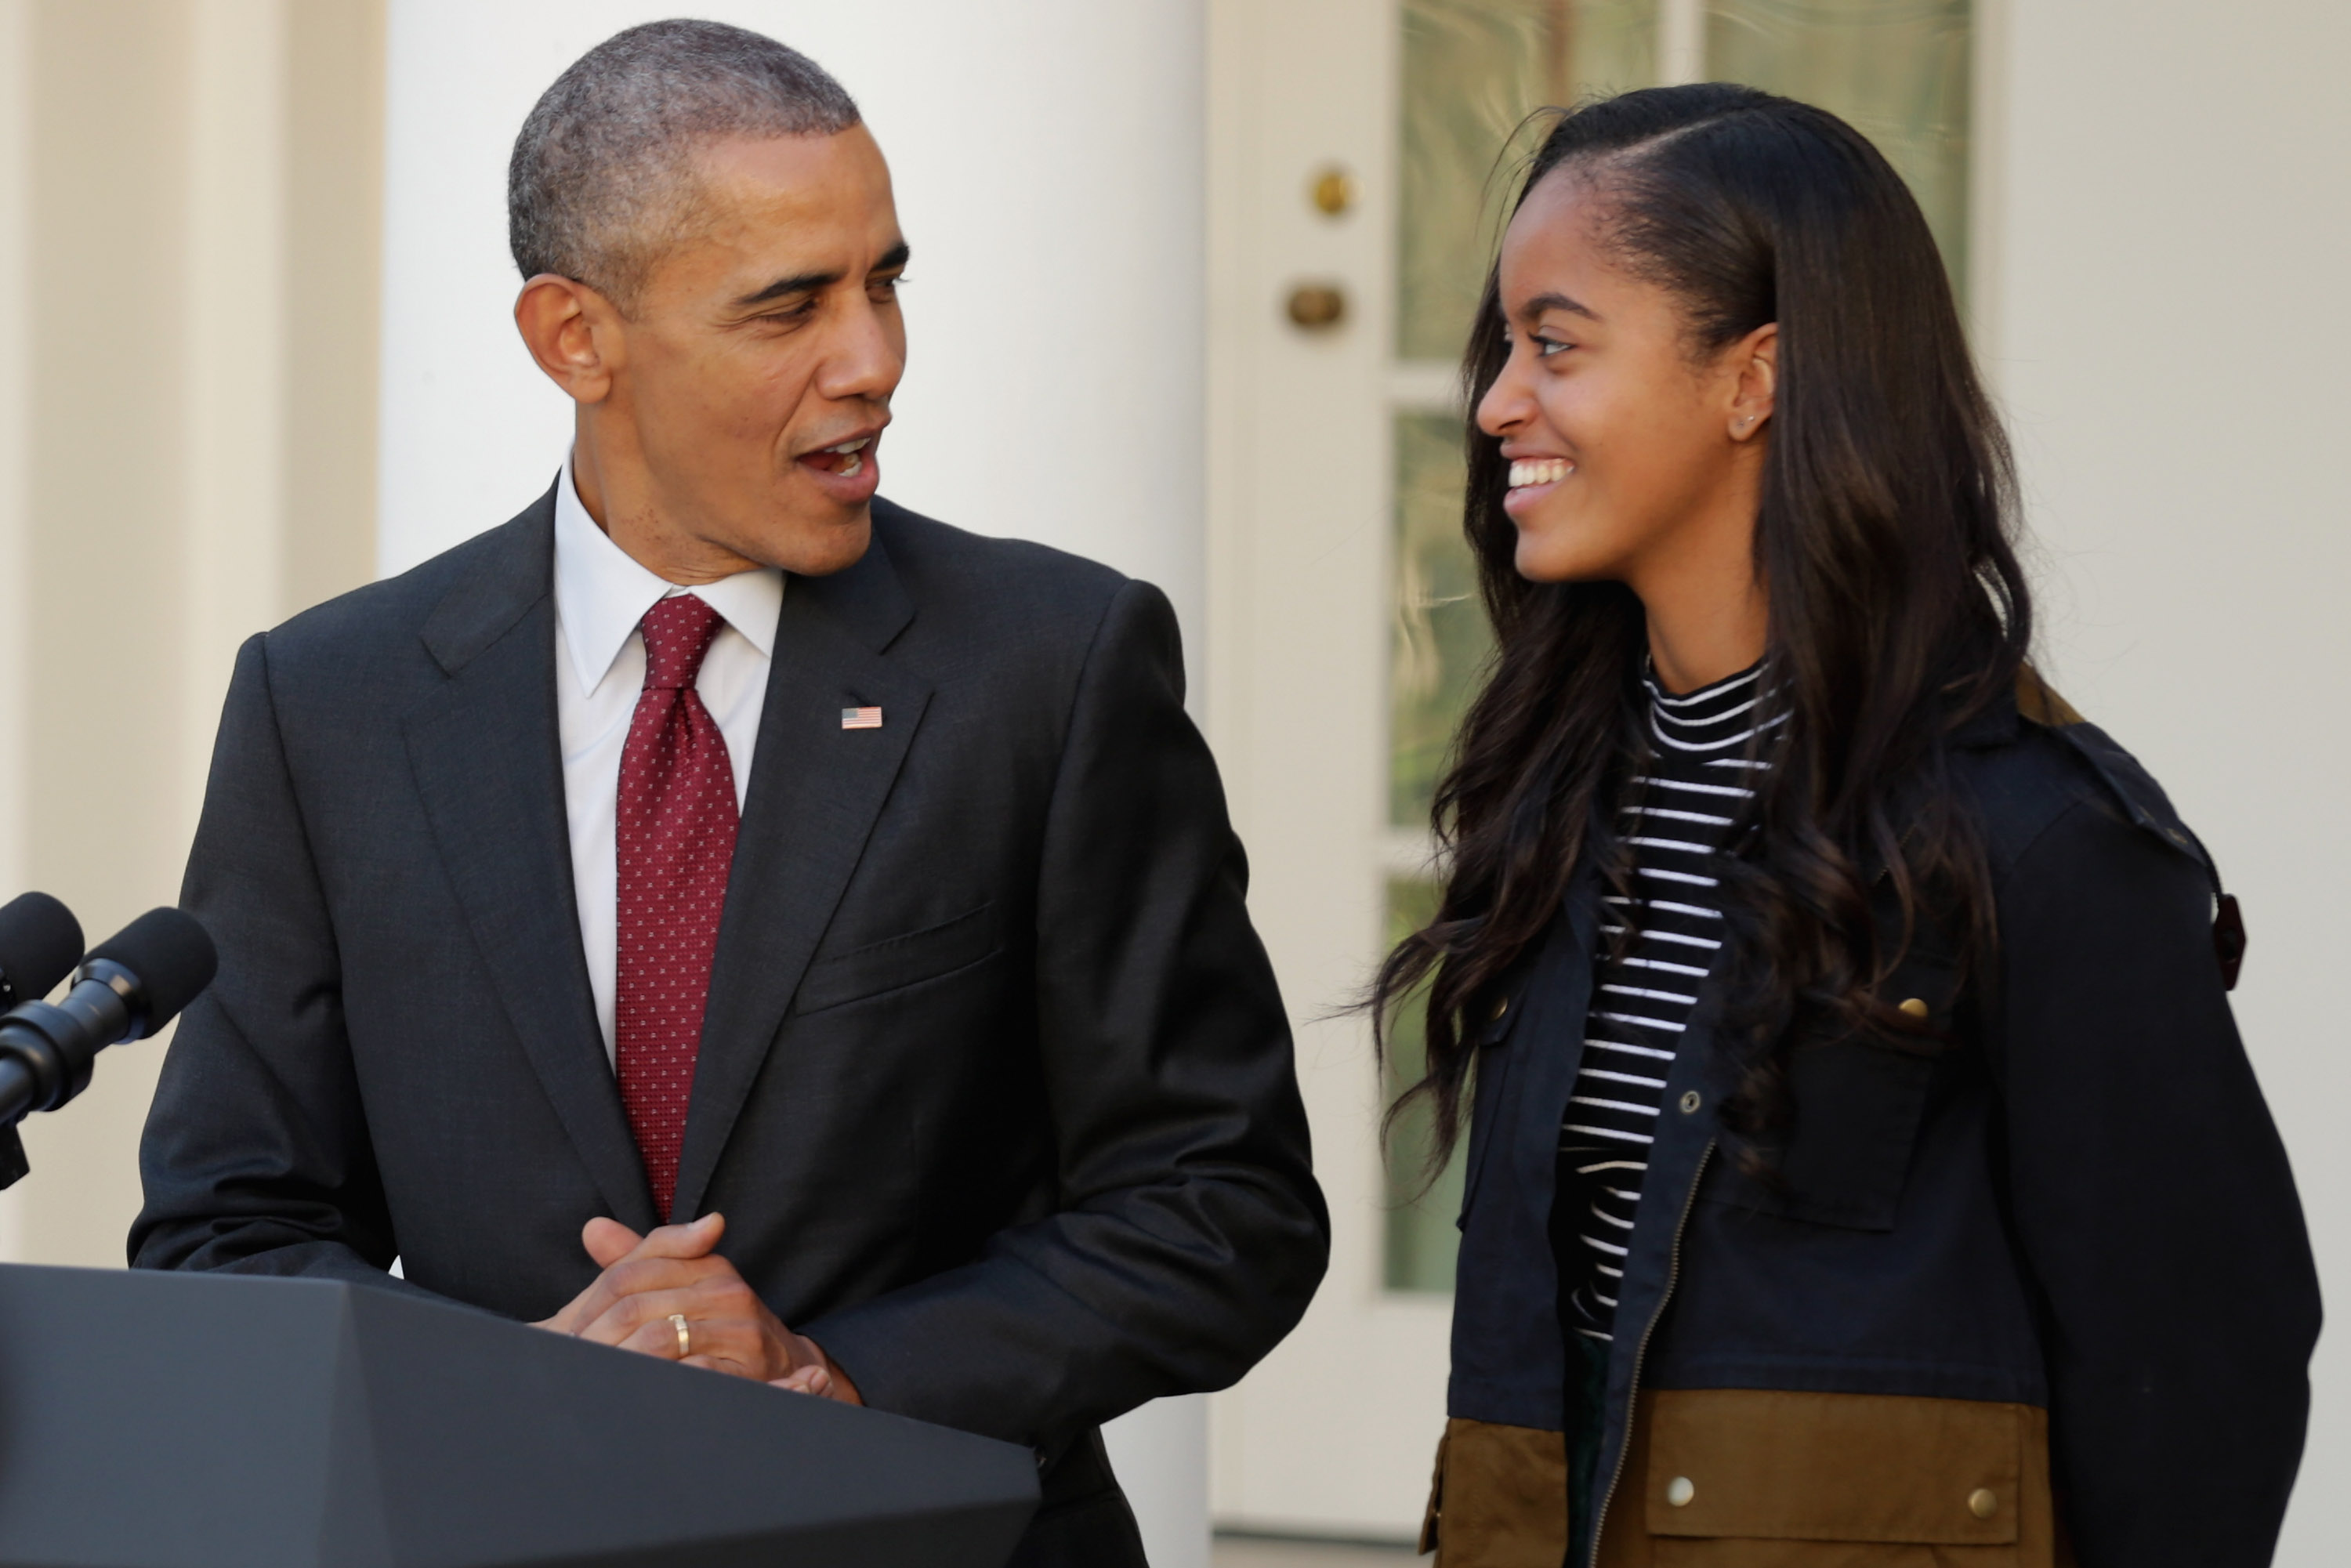 U.S. President Barack Obama (L) delivers remarks with his daughter Malia during the annual turkey pardoning ceremony in the Rose Garden at the White House  November 25, 2015 in Washington, DC.